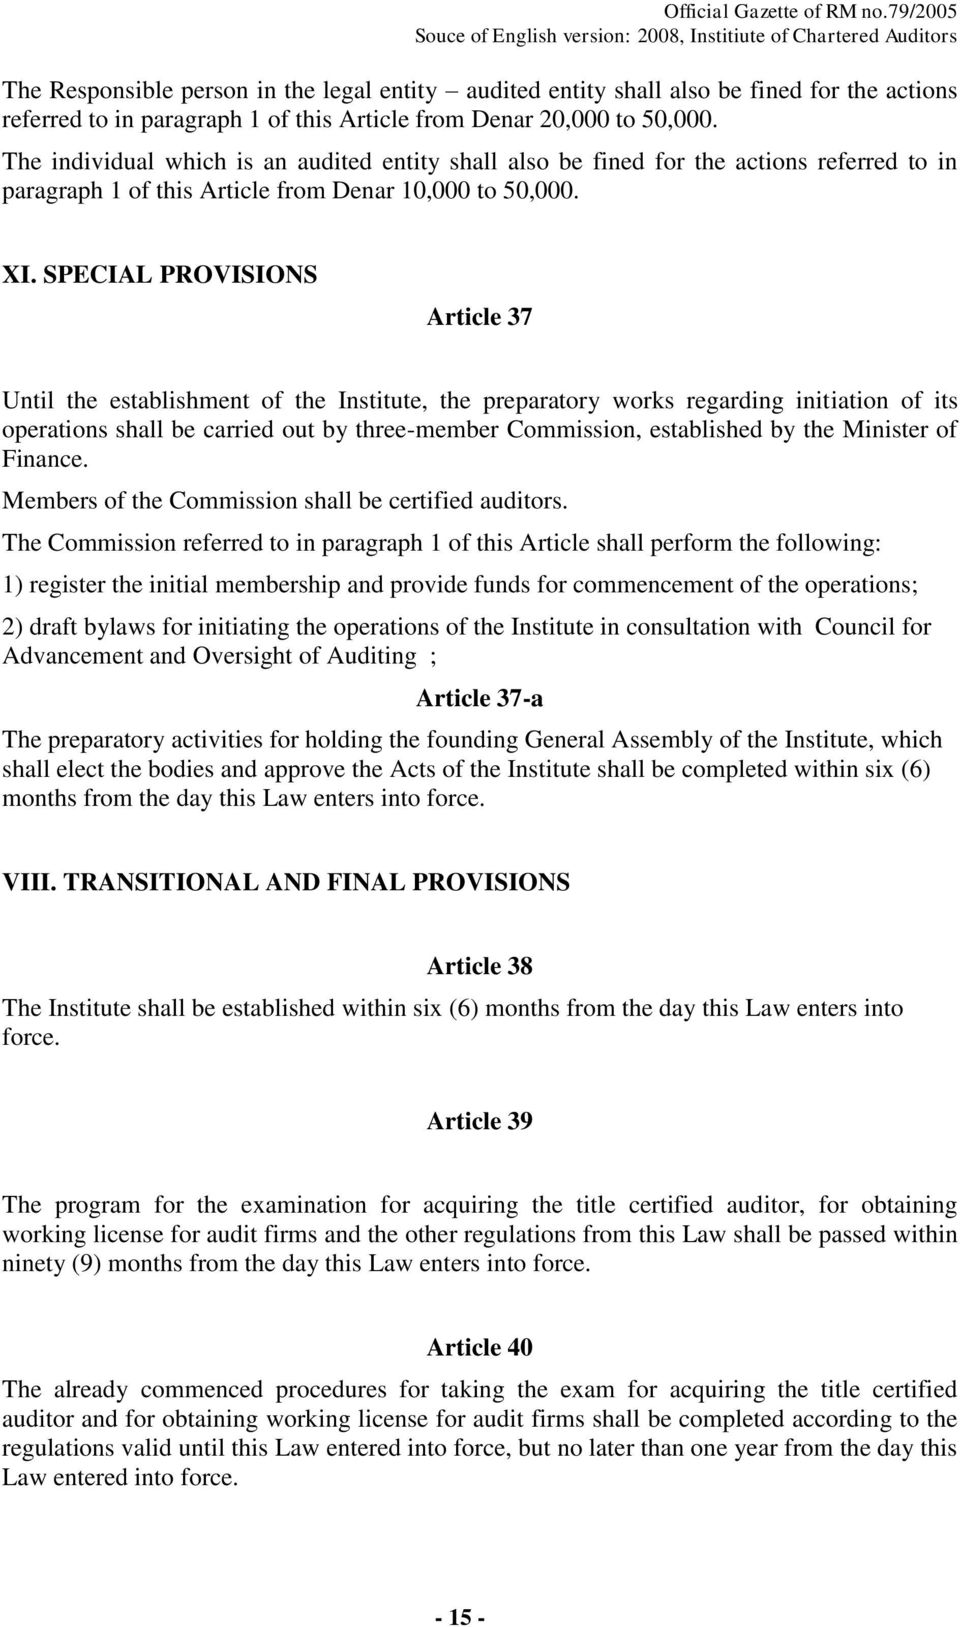 SPECIAL PROVISIONS Article 37 Until the establishment of the Institute, the preparatory works regarding initiation of its operations shall be carried out by three-member Commission, established by